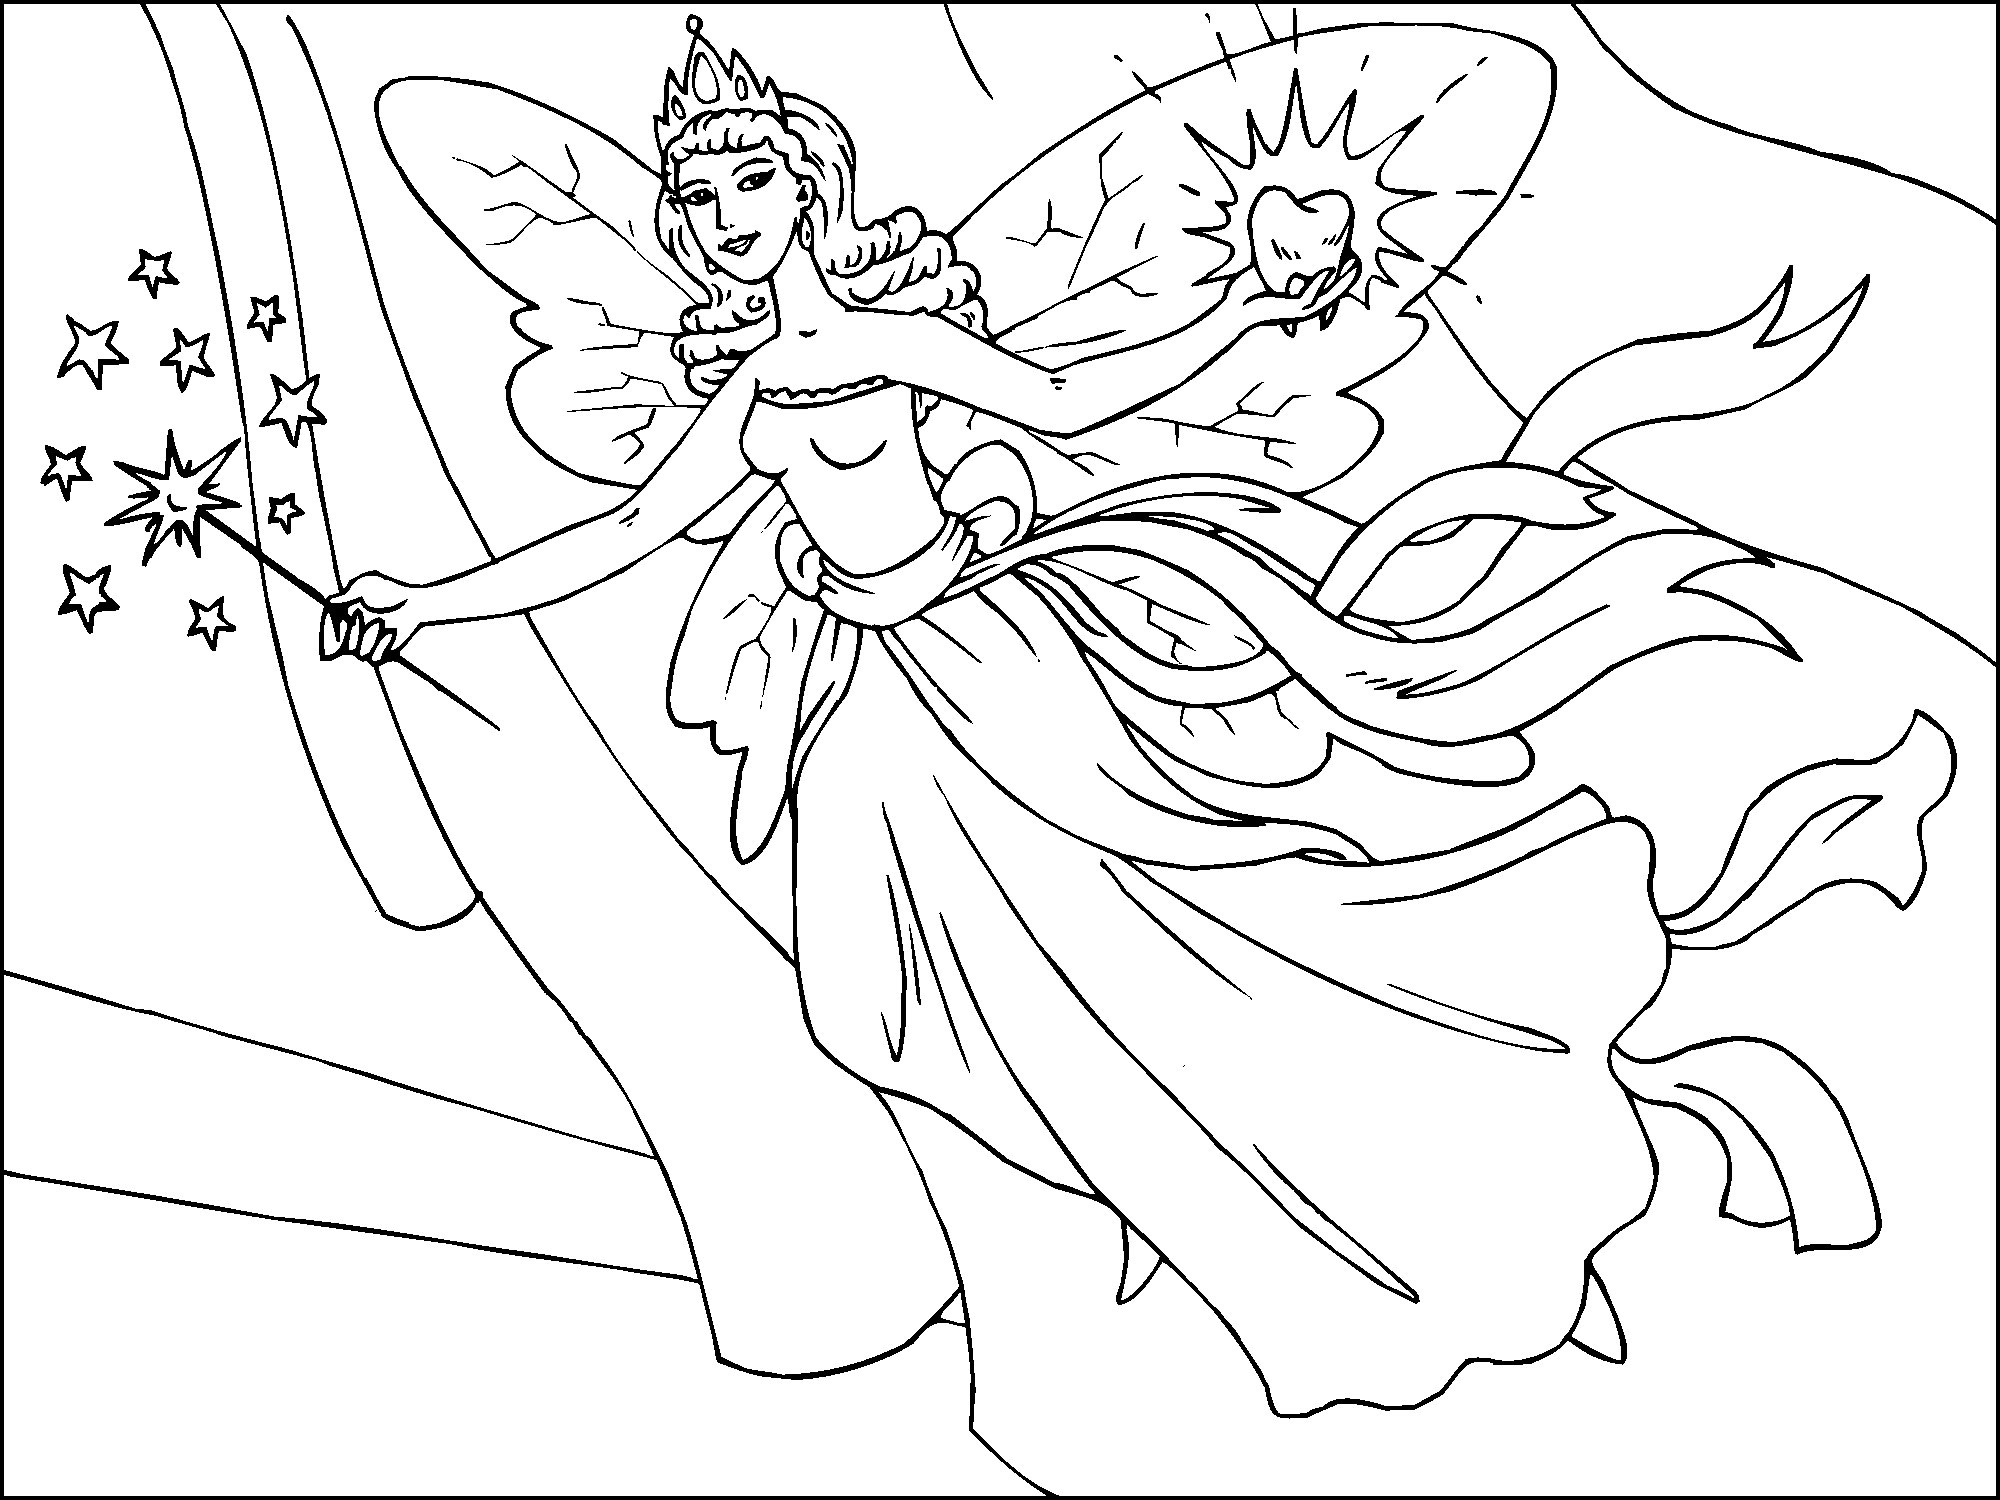 2000x1500 Coloring Pages Tooth Fairy Download Coloring For Kids